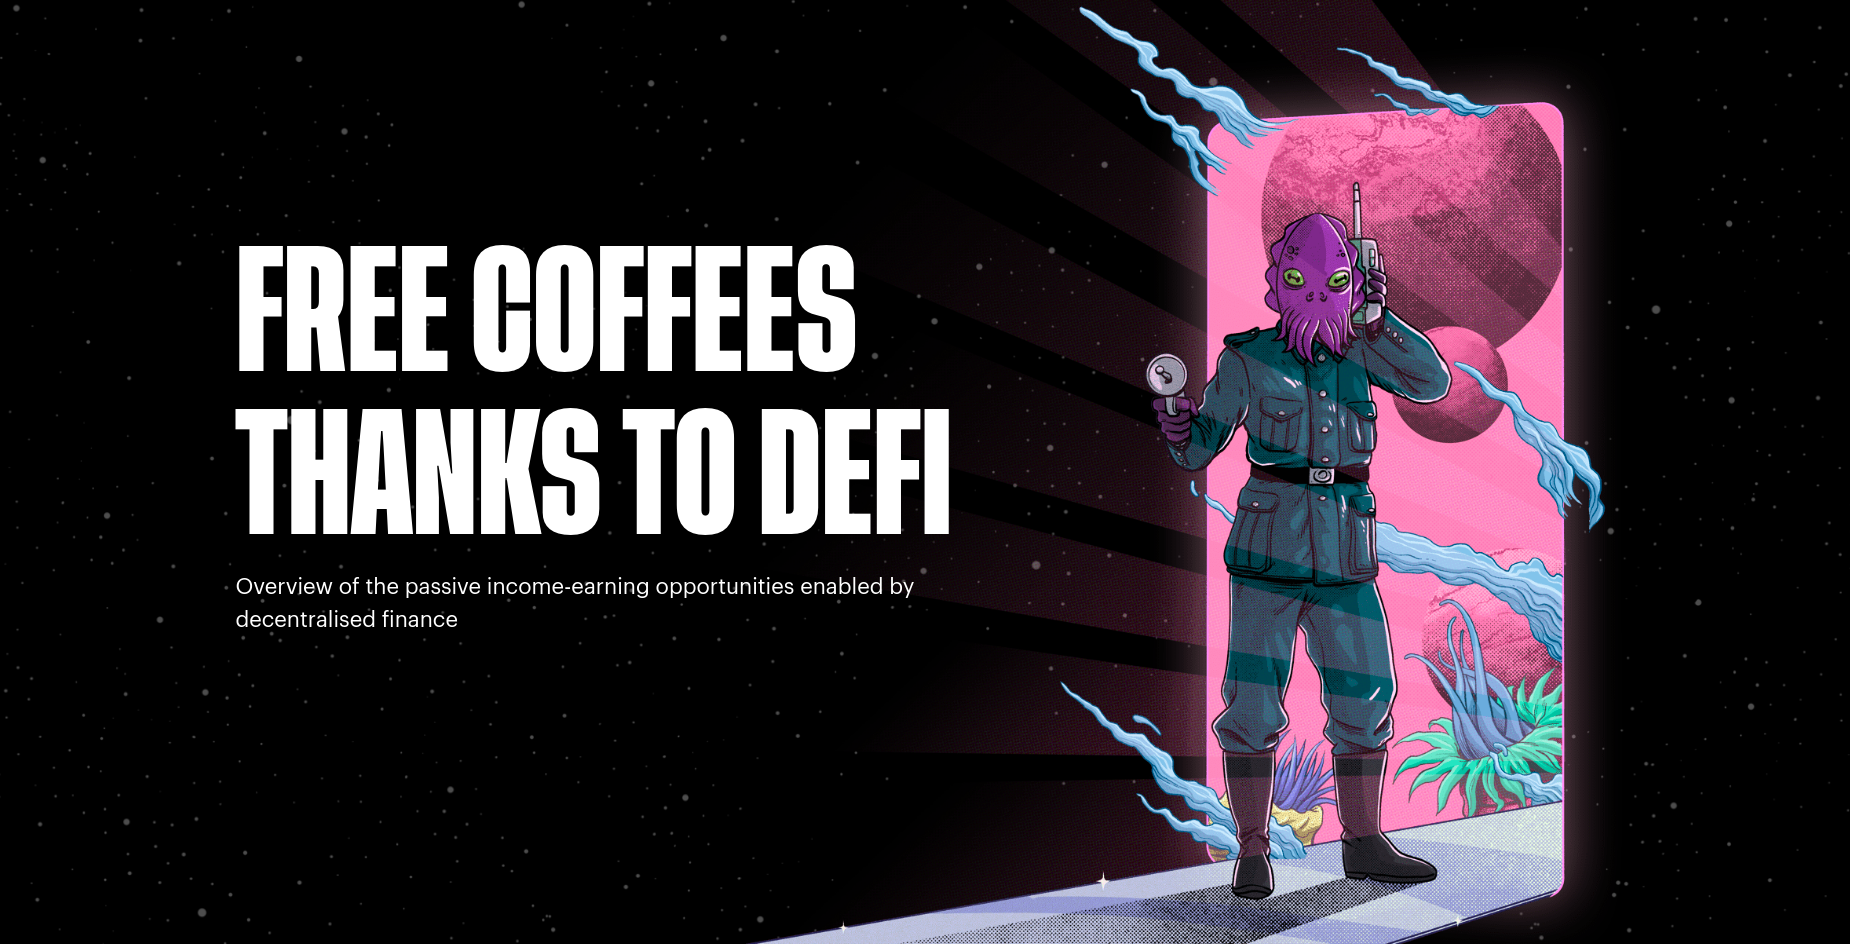 Free Coffees thanks to DeFi—Using the Monolith Card & DeFi to never pay for a coffee again